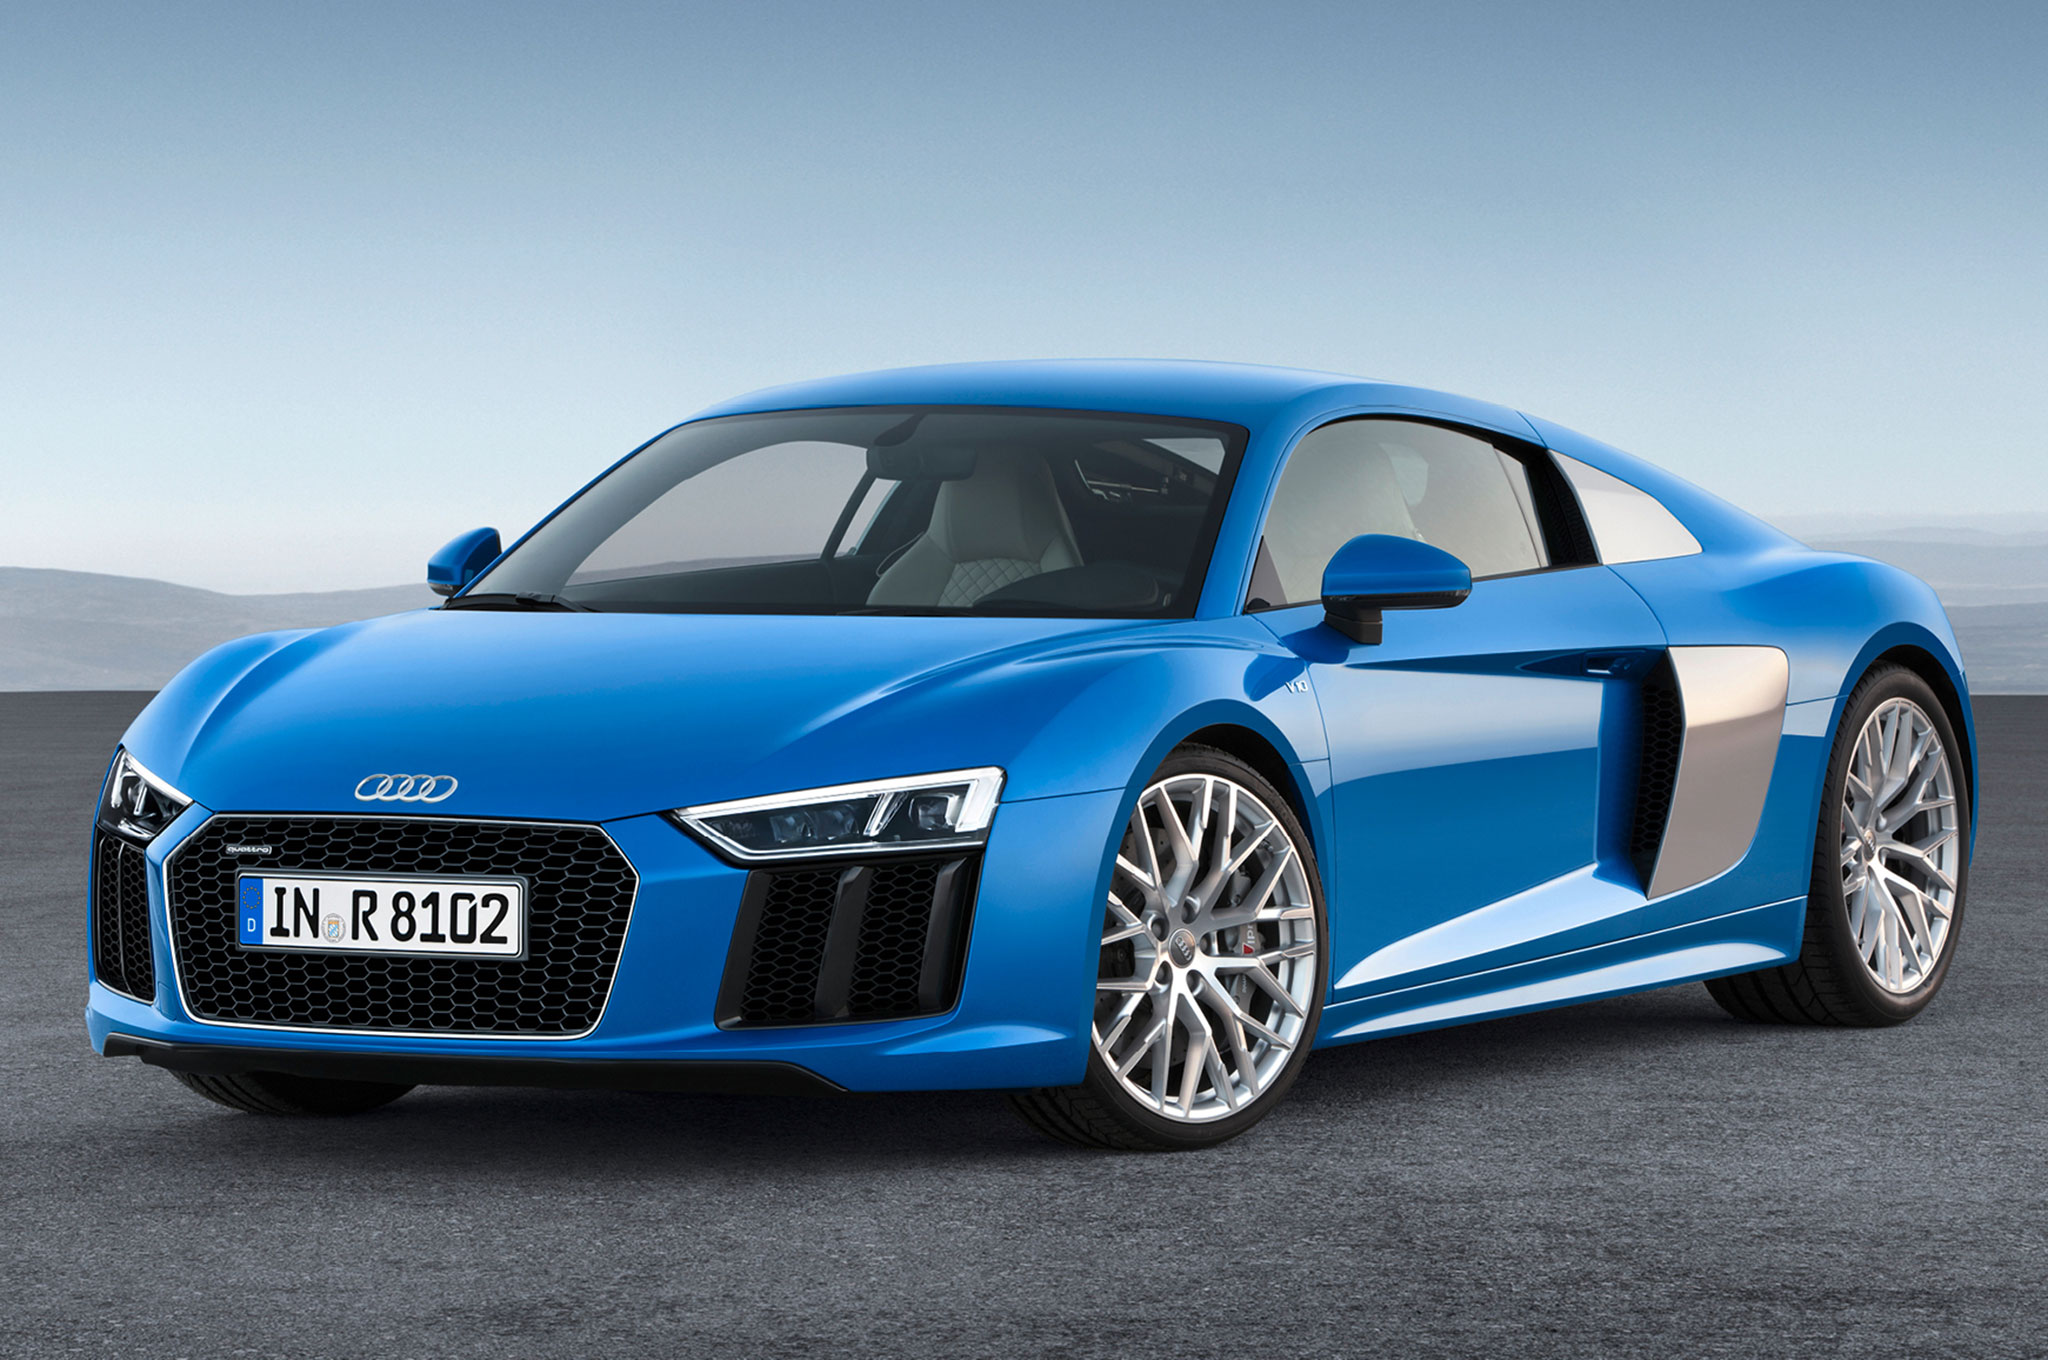 Audi R Spyder V Plus Drops With Horsepower Automobile - Audi r8 convertible